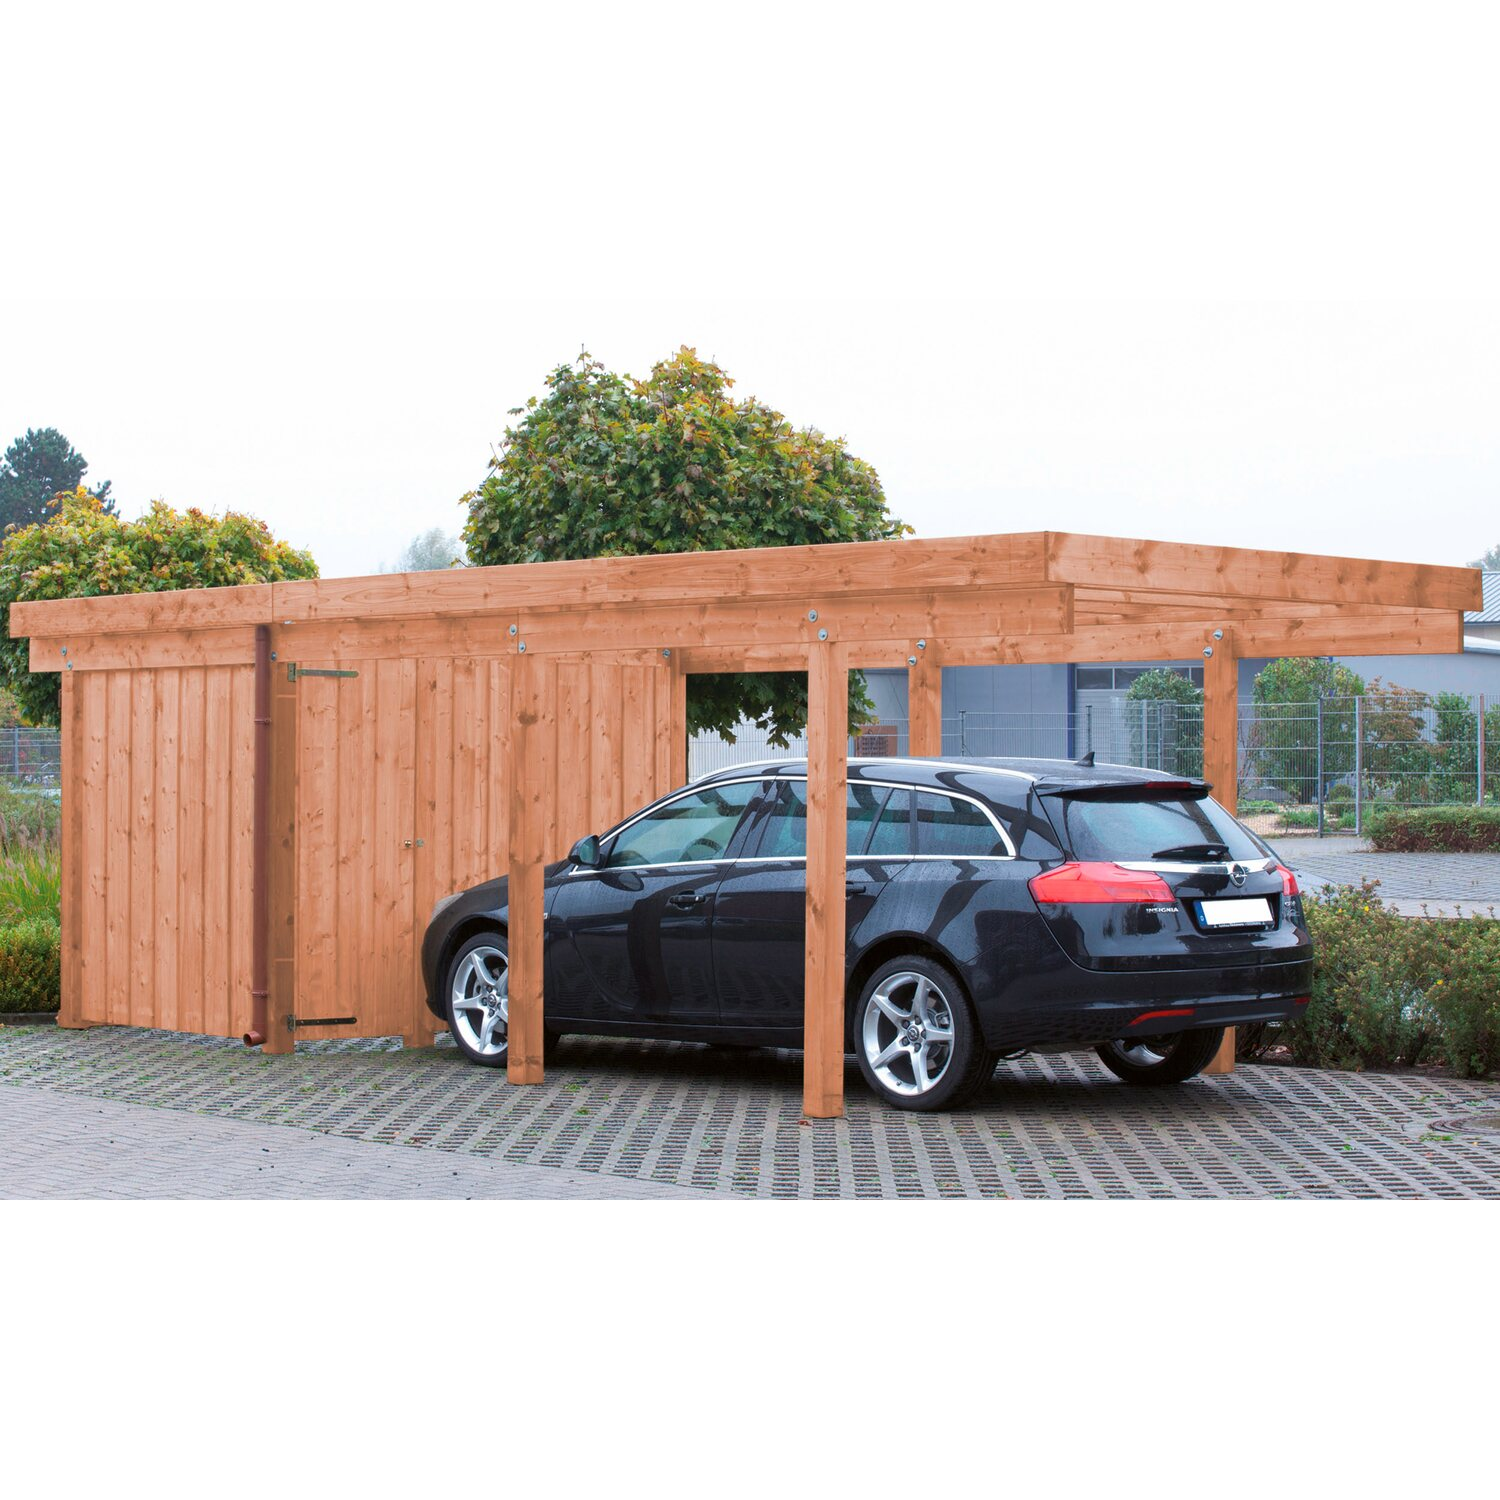 einzel carport amrum 2 pvc dacheindeckung douglasie natur kaufen bei obi. Black Bedroom Furniture Sets. Home Design Ideas